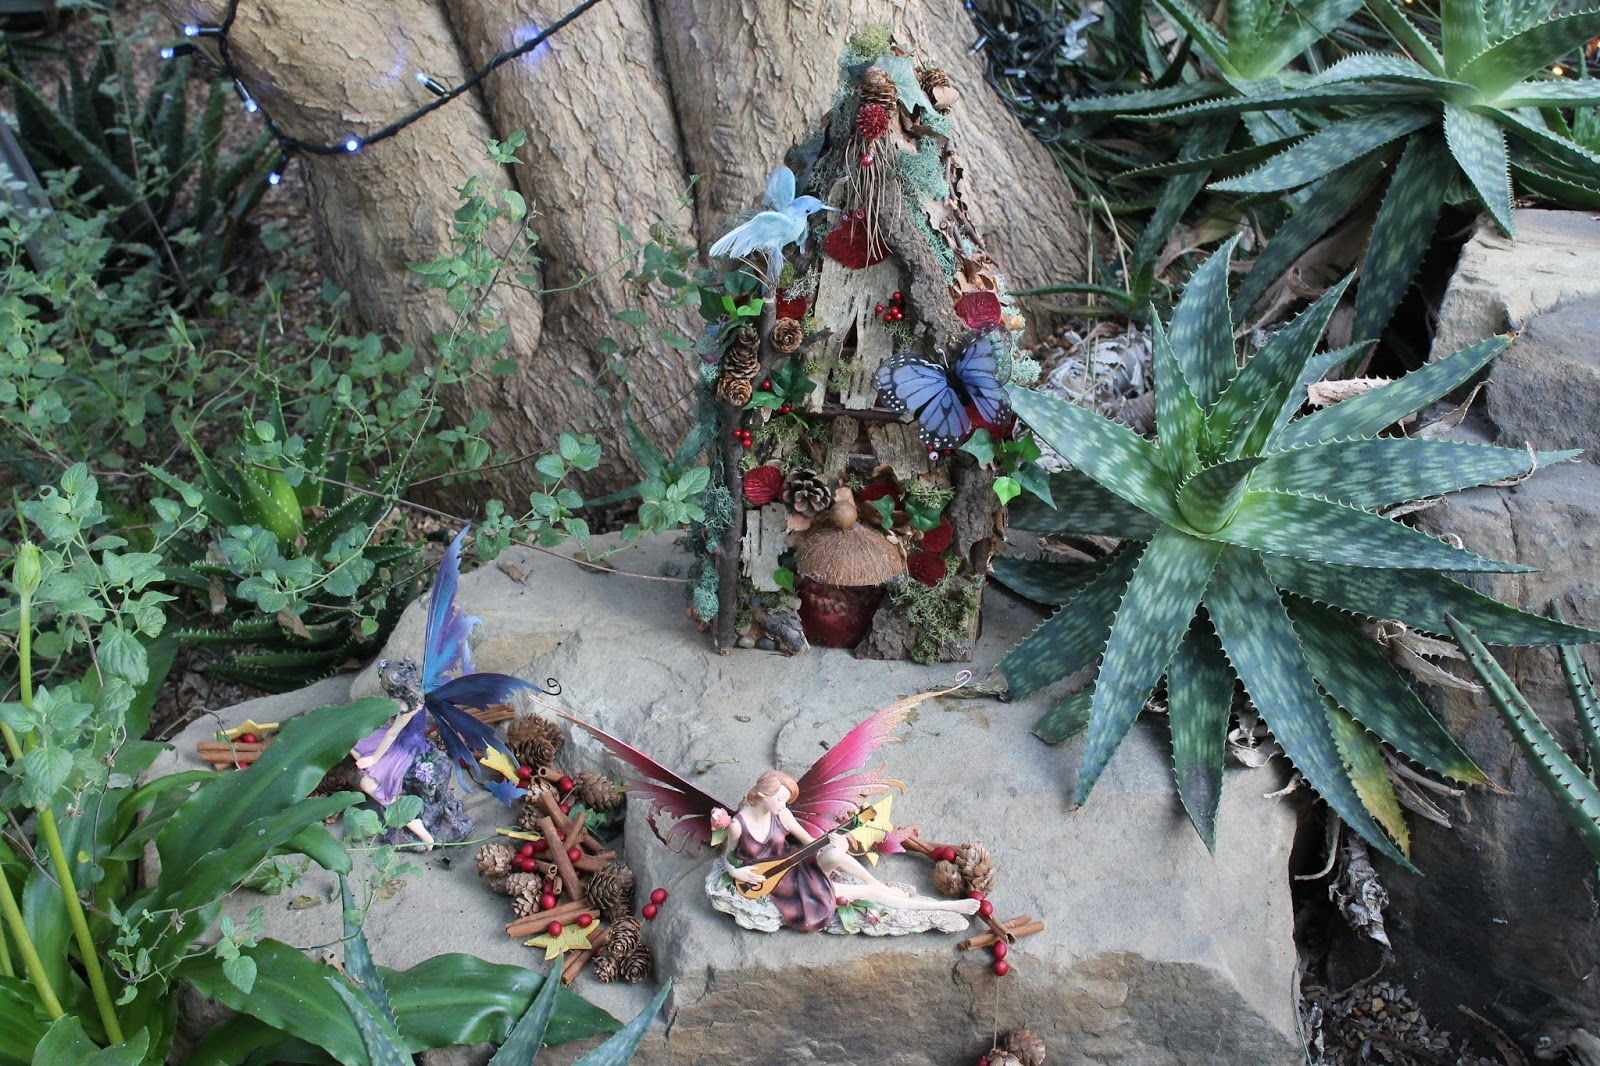 jibberjabberuk fairies in the winter garden